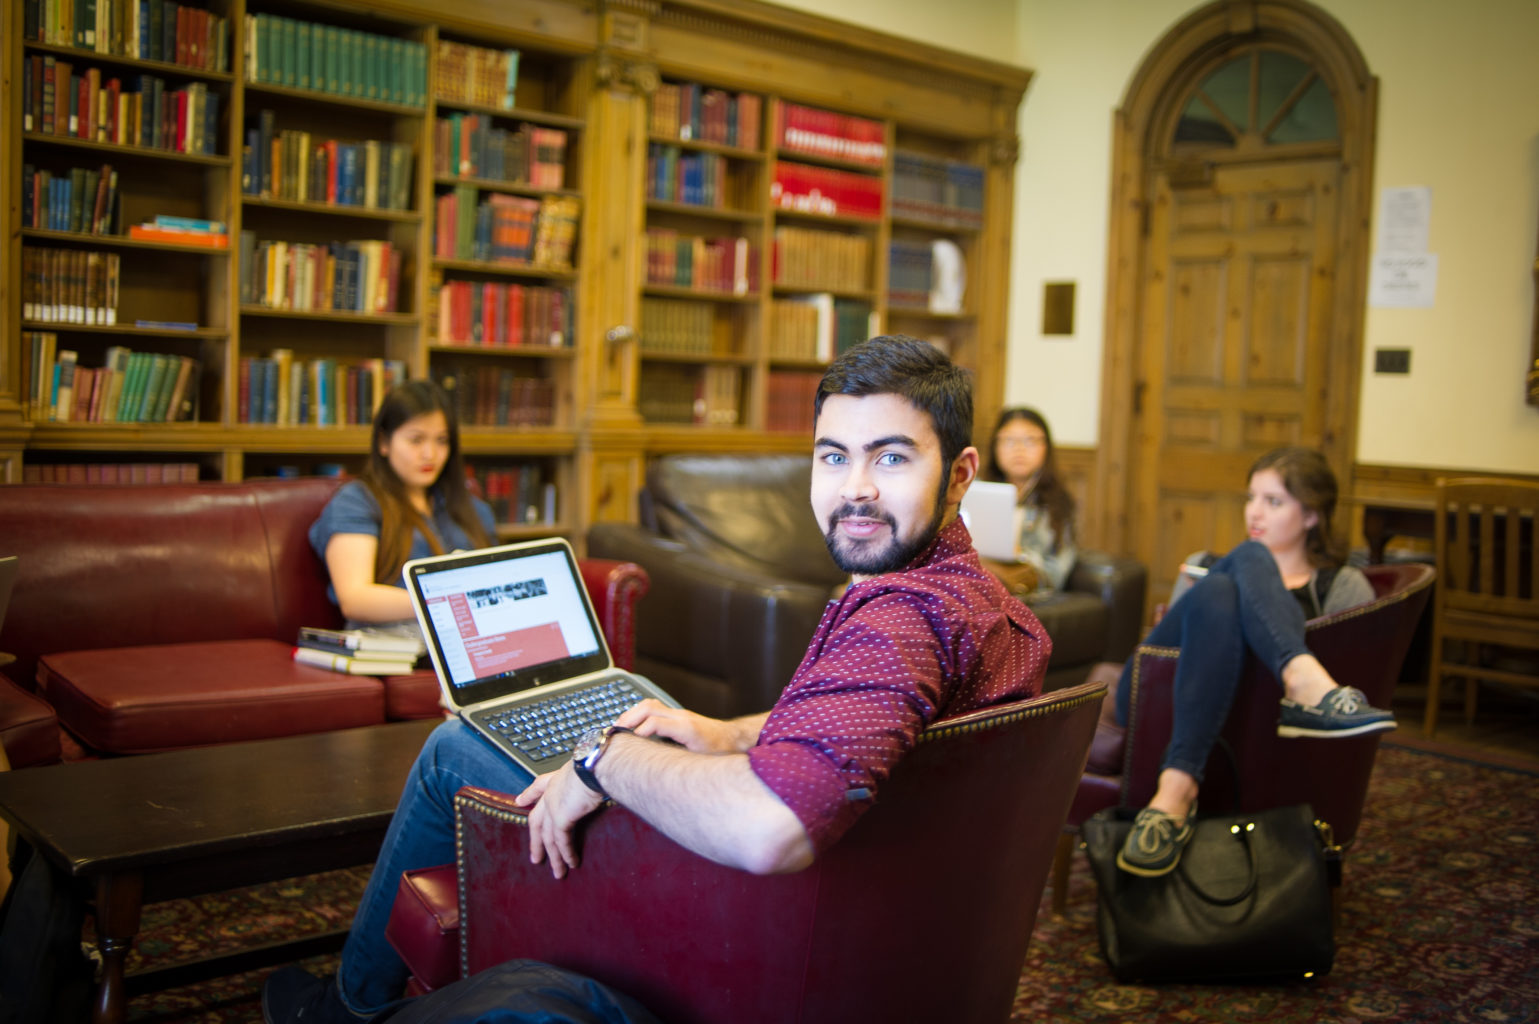 Student looks at the camera while other students are studying in the Stedman Library in St. Hilda's College